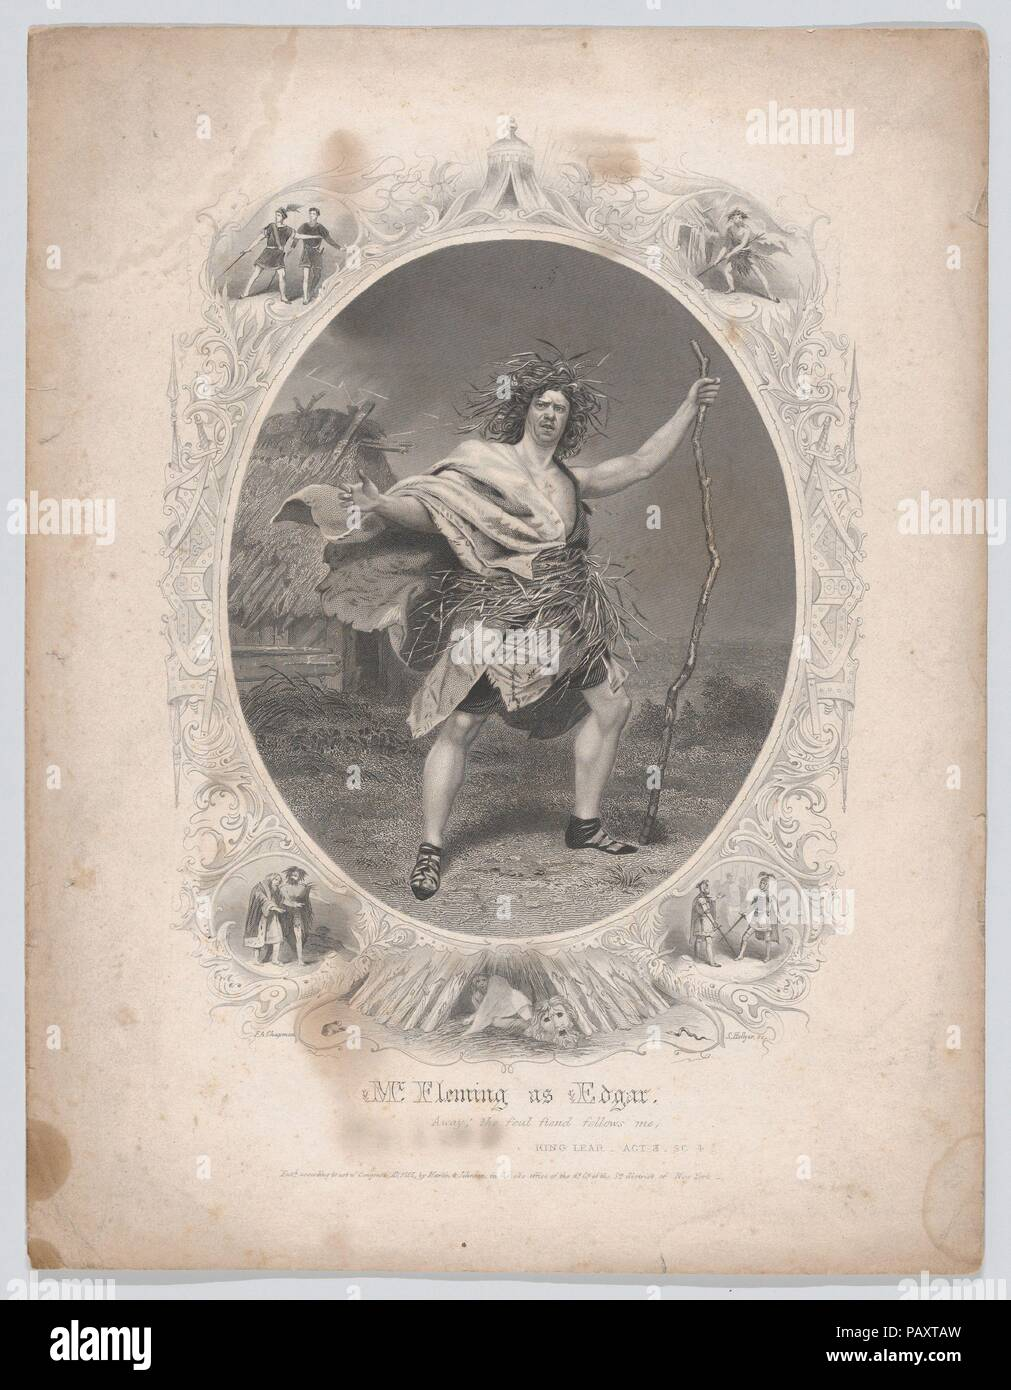 Mr. Fleming as Edgar: 'Away! the foul fiend follows me' (King Lear, Act 3, Scene 4). Artist: After Frederick A. Chapman (American, 1818-1891). Dimensions: Sheet: 11 1/8 × 8 9/16 in. (28.2 × 21.7 cm). Engraver: Samuel Hollyer (American, 1826-1919). Publisher: Martin & Johnson, New York. Sitter: William Maybury Fleming (American, 1817-1866). Subject: William Shakespeare (British, Stratford-upon-Avon 1564-1616 Stratford-upon-Avon). Date: 1855. Museum: Metropolitan Museum of Art, New York, USA. - Stock Image